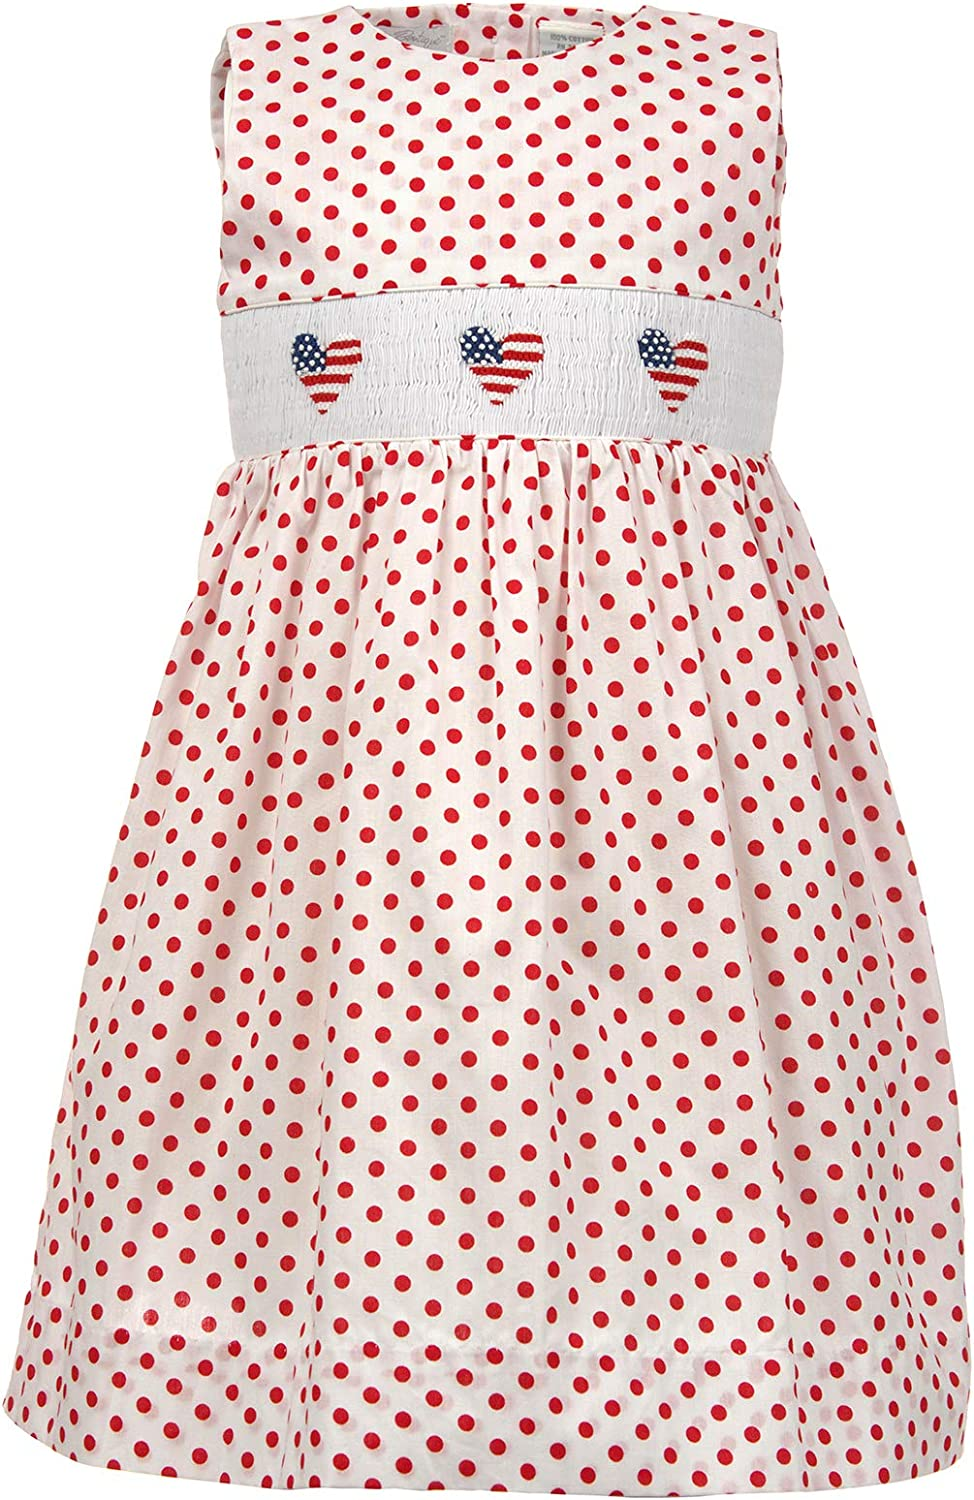 Girls Dress Smocked American Flag Hearts on Red and White Polka Dot Dress